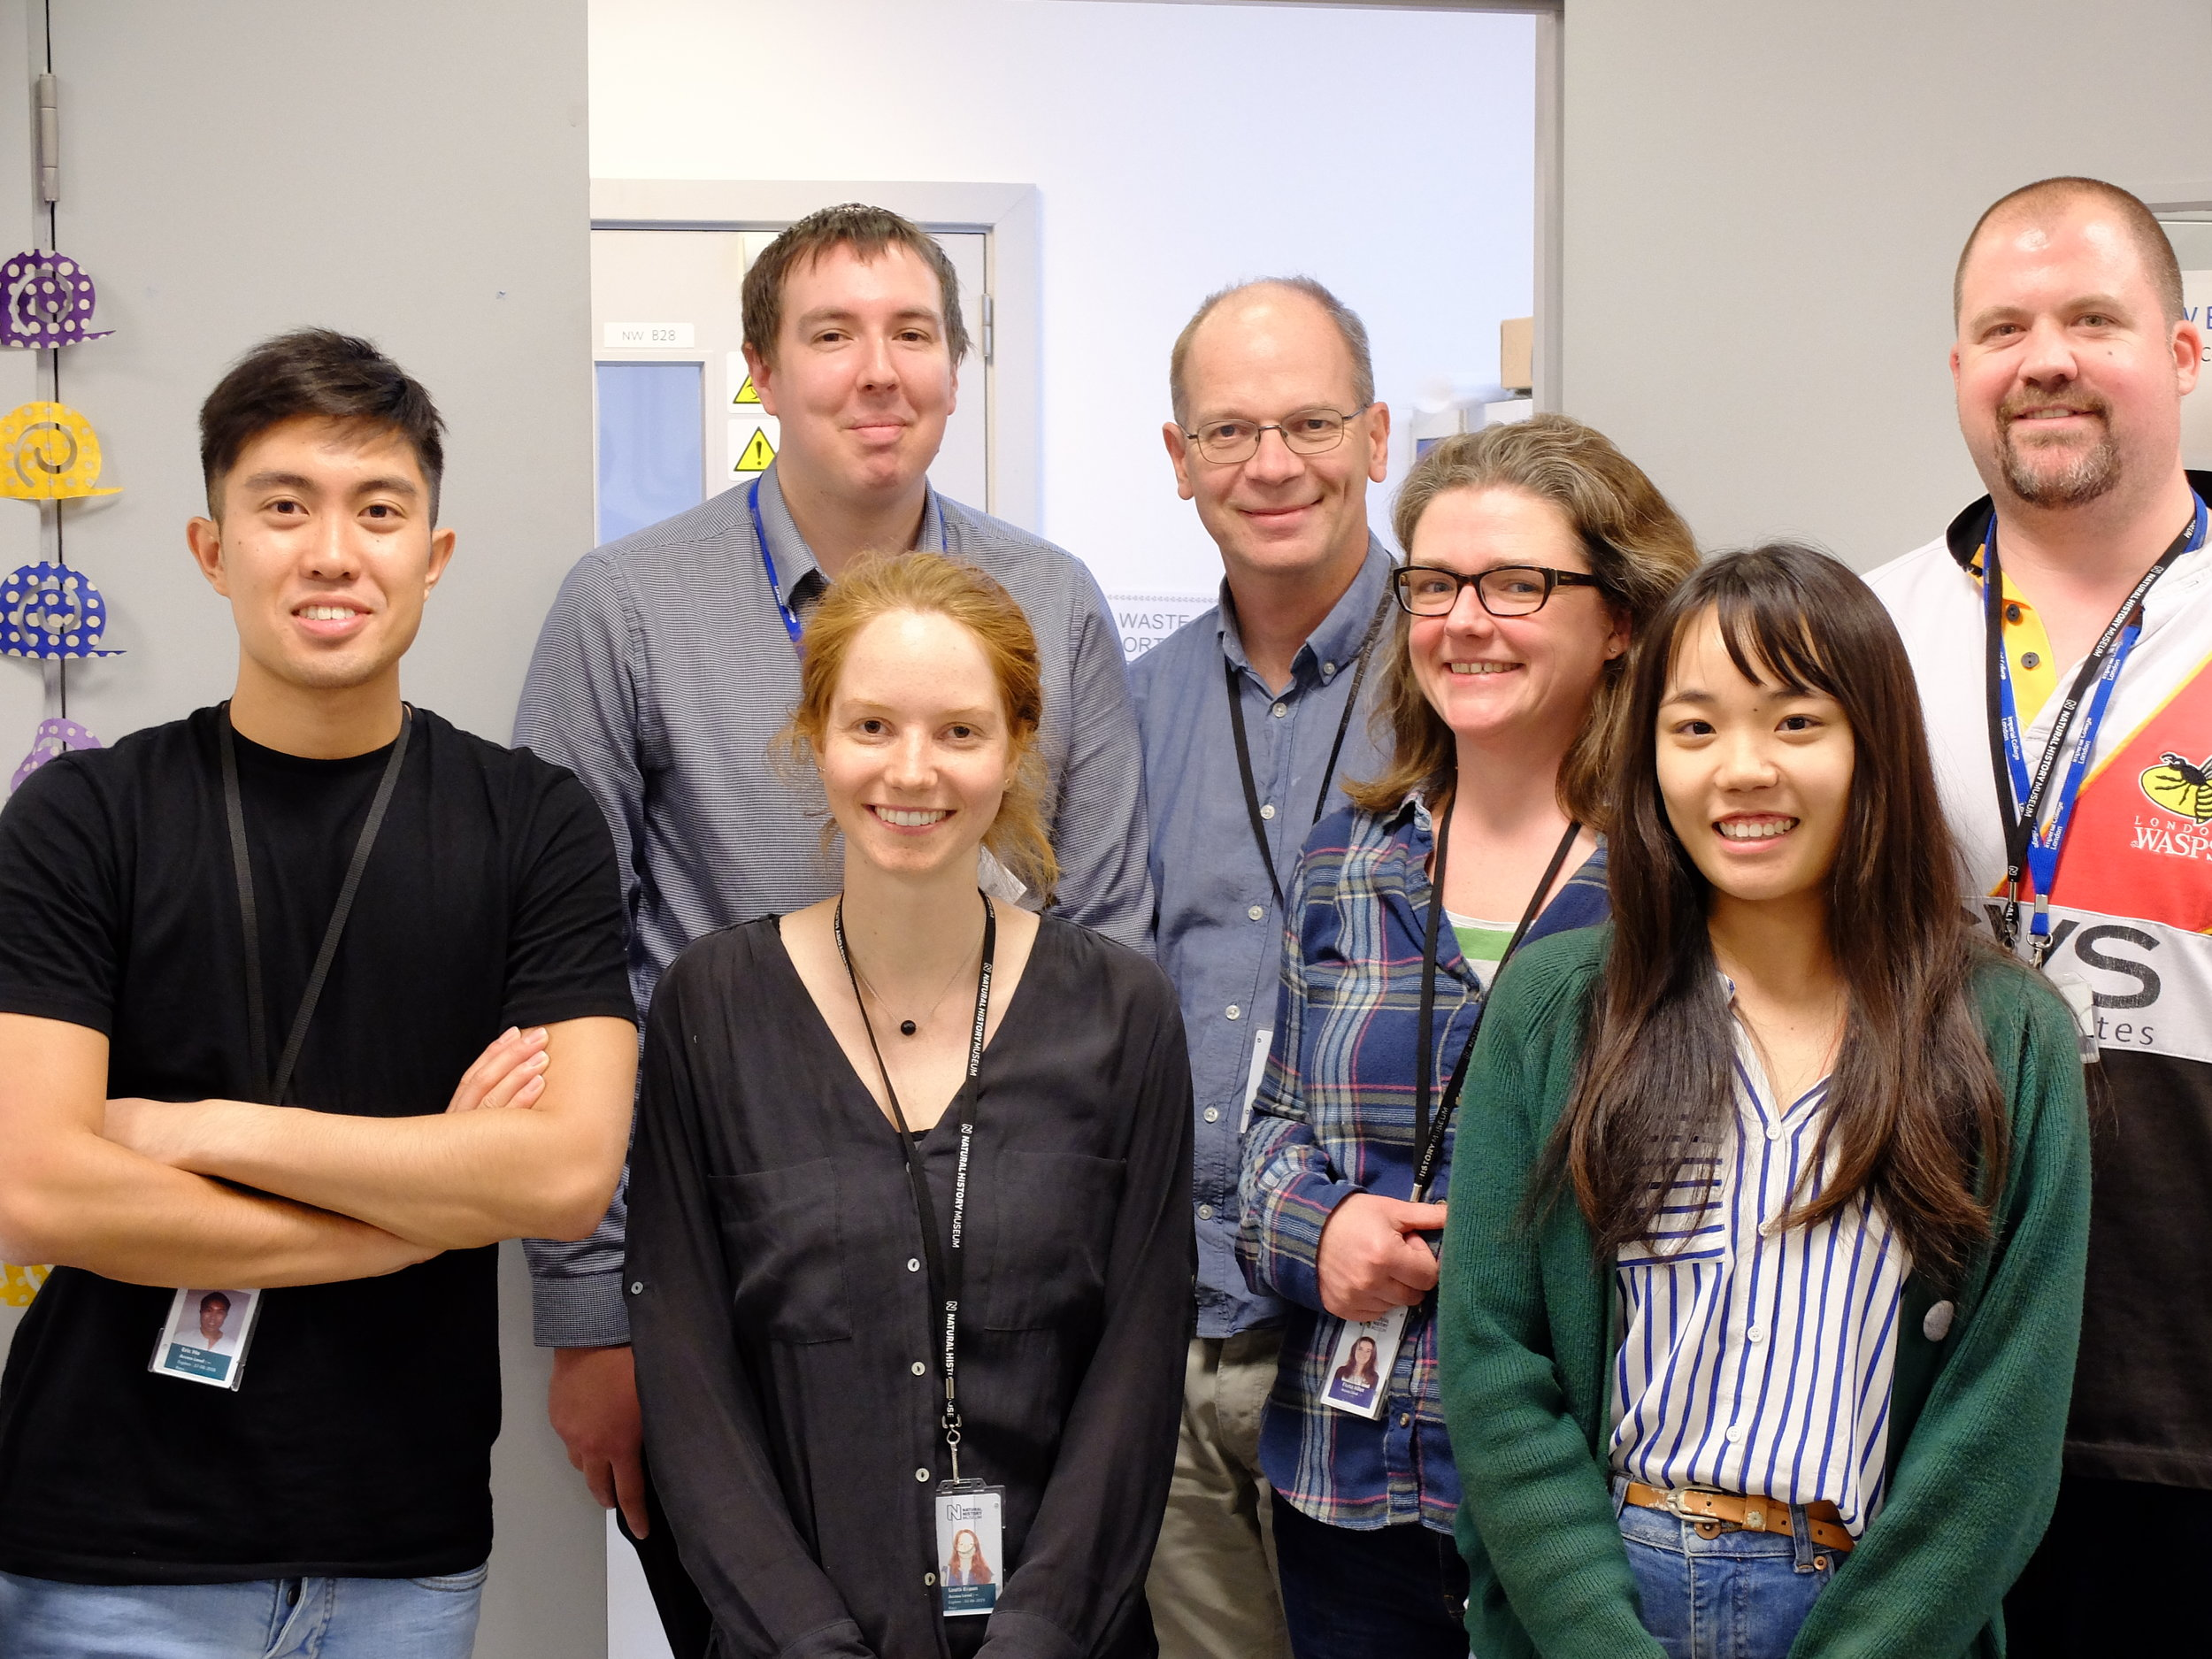 The lab team - special thanks to Richard, Aidan, Fiona and Alex